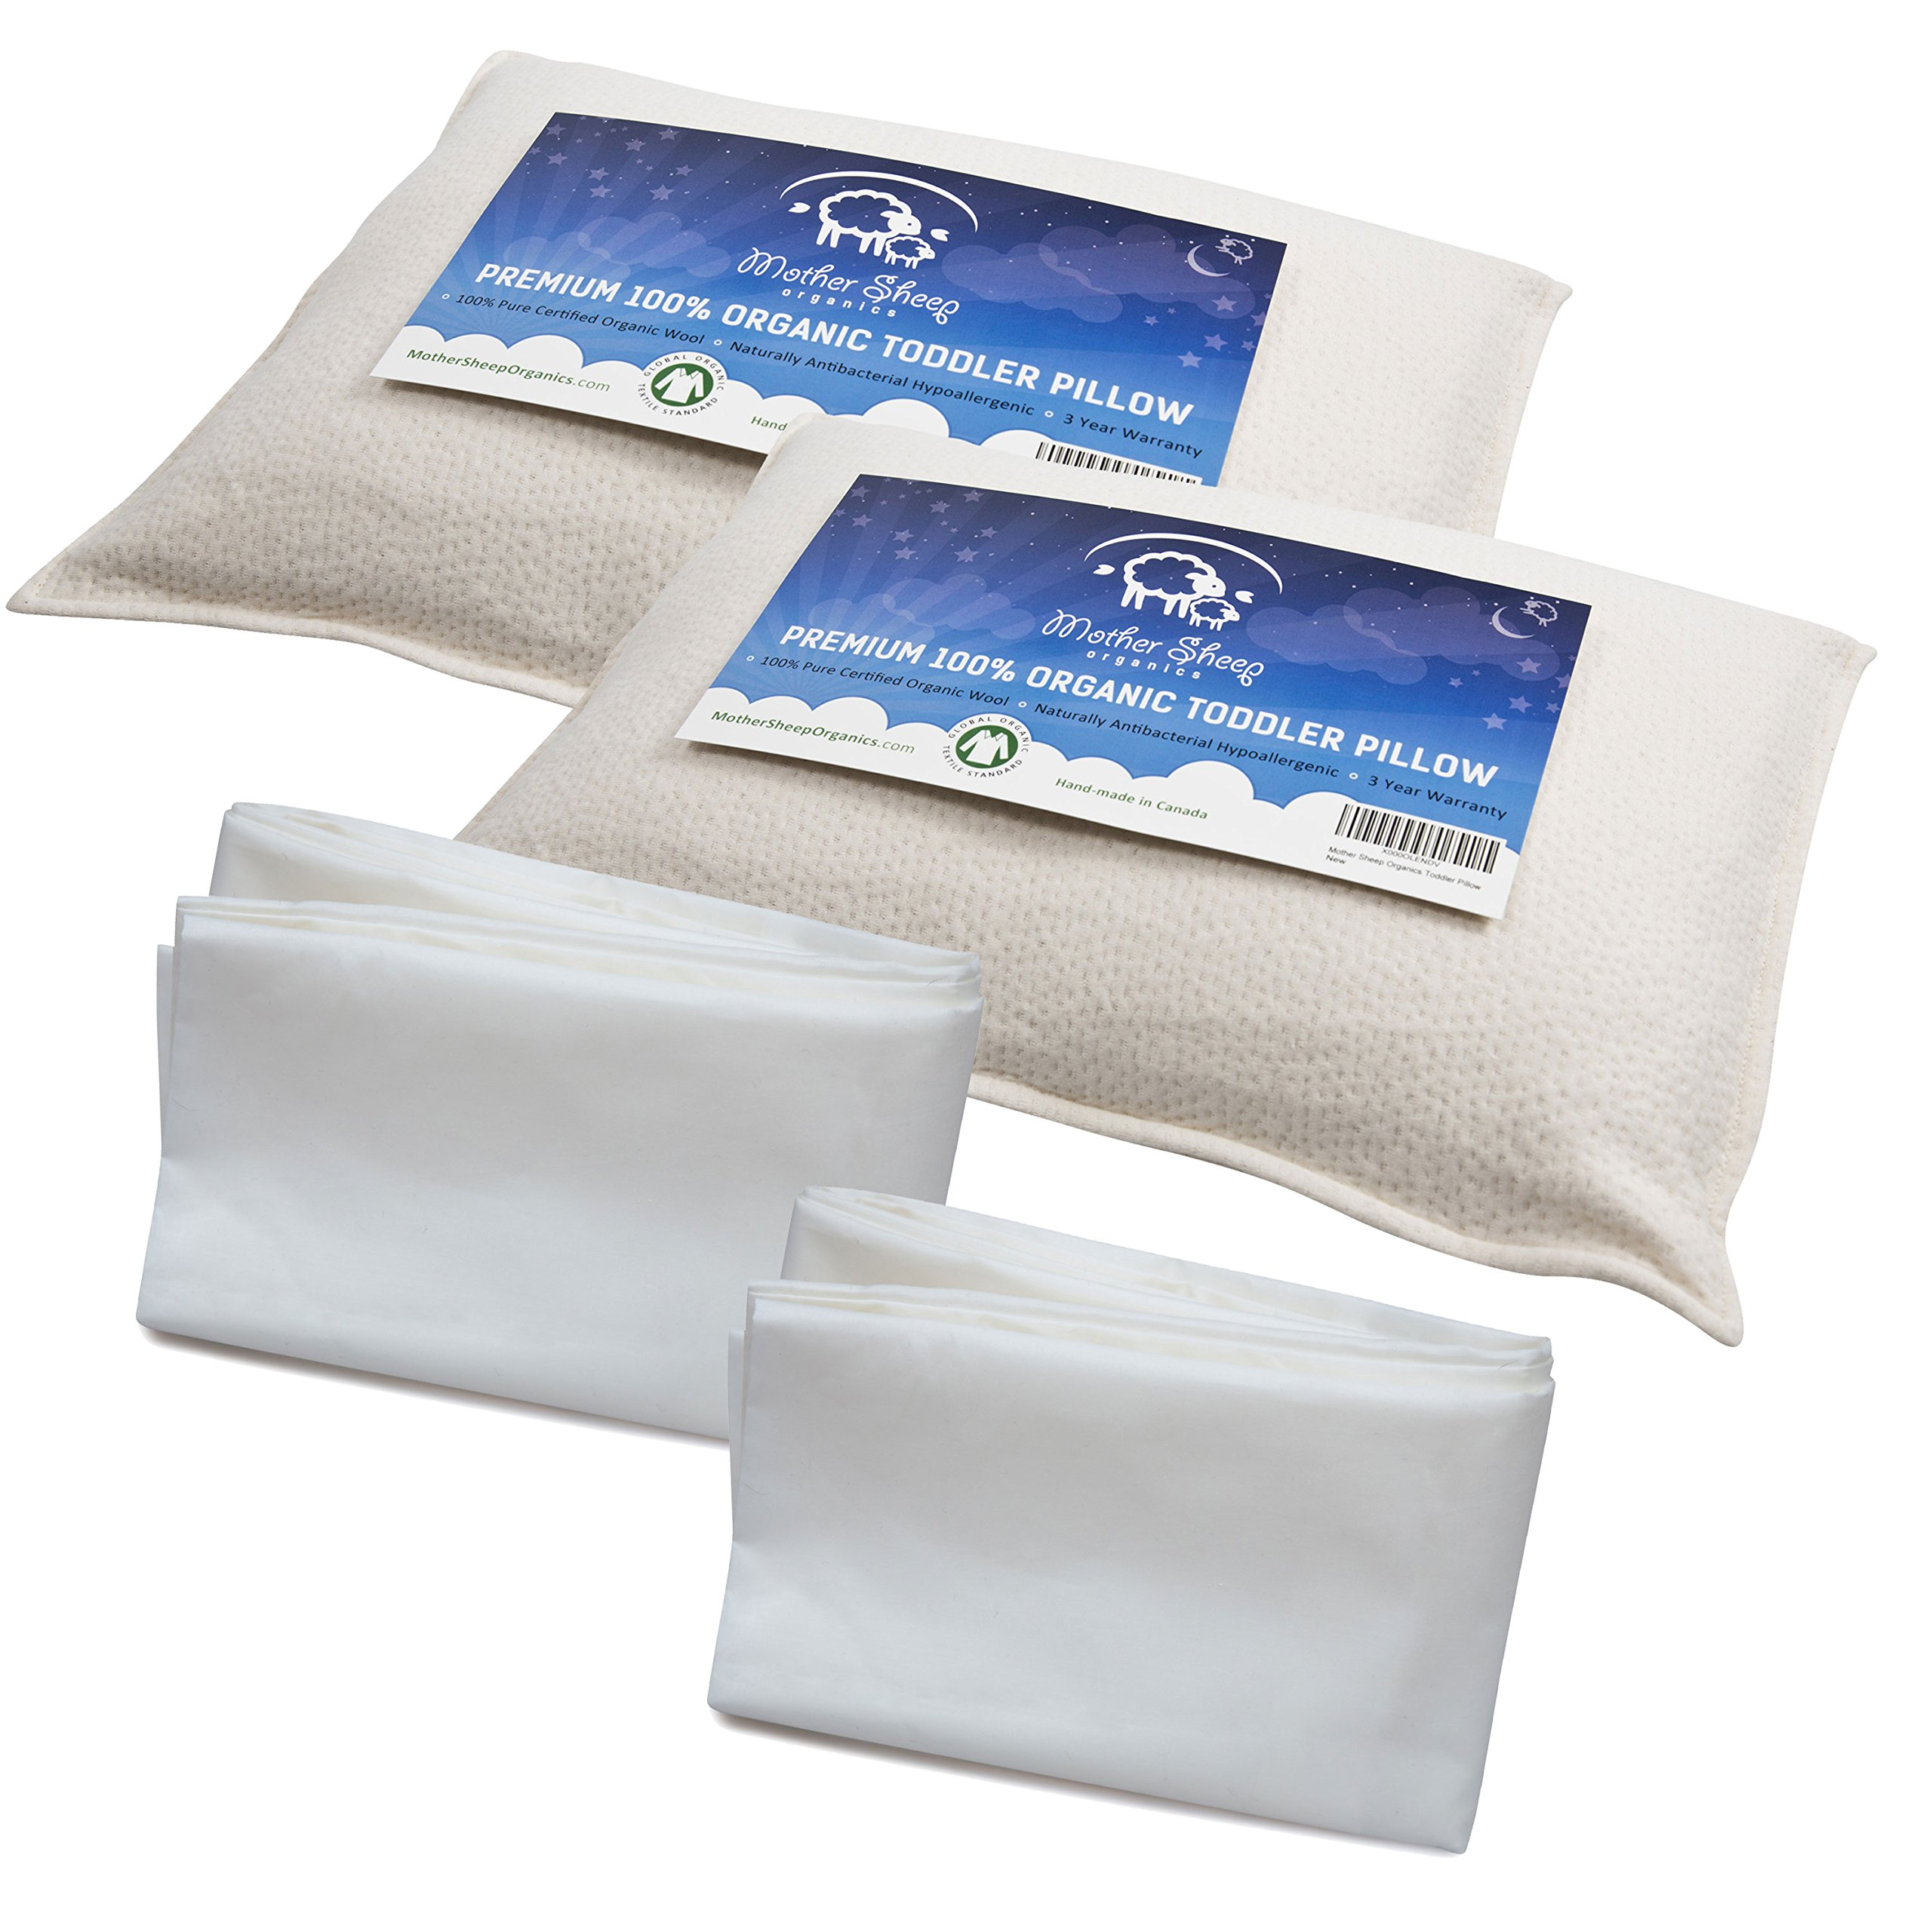 Bundle of 4 items – 2 Organic Wool Toddler Pillows & 2 Toddler Pillowcases, All Natural & 100% GOTS Certified Pure Organic with Wool 'Pearls' Filling & 100% Pure Certified Long Staple Organic Cotton